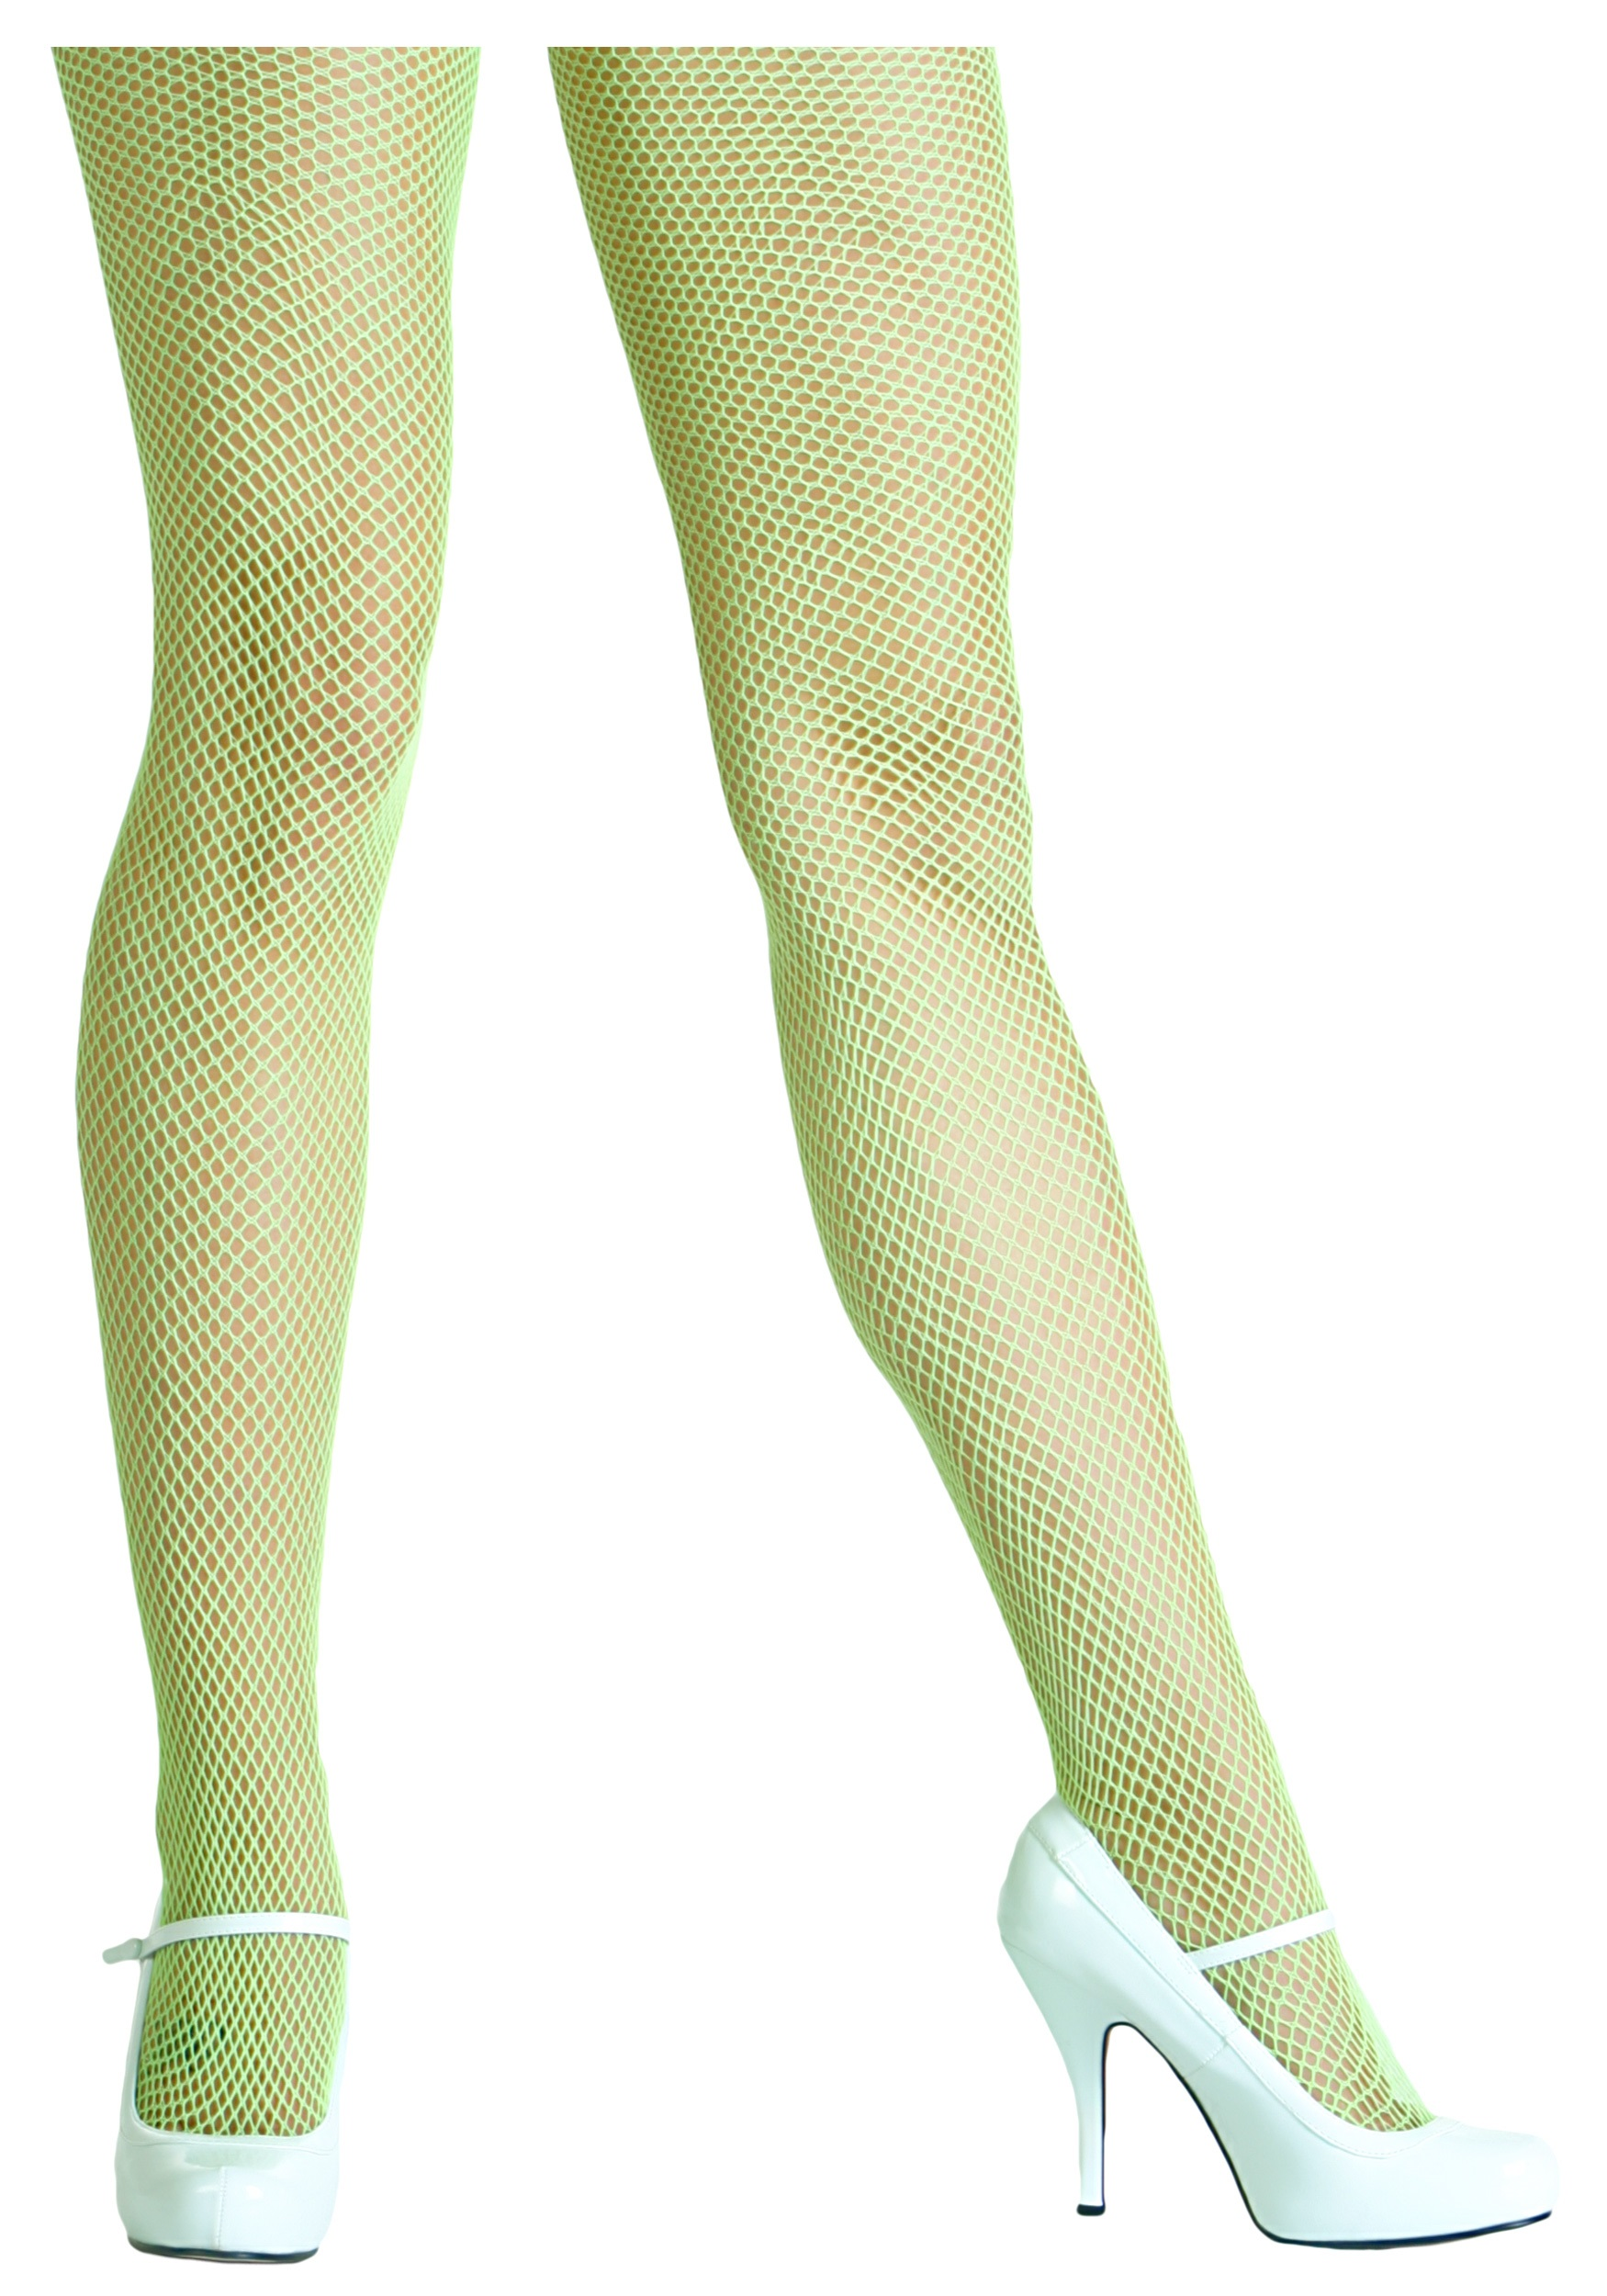 INOpets.com Anything for Pets Parents & Their Pets Neon Green Fishnet Tights